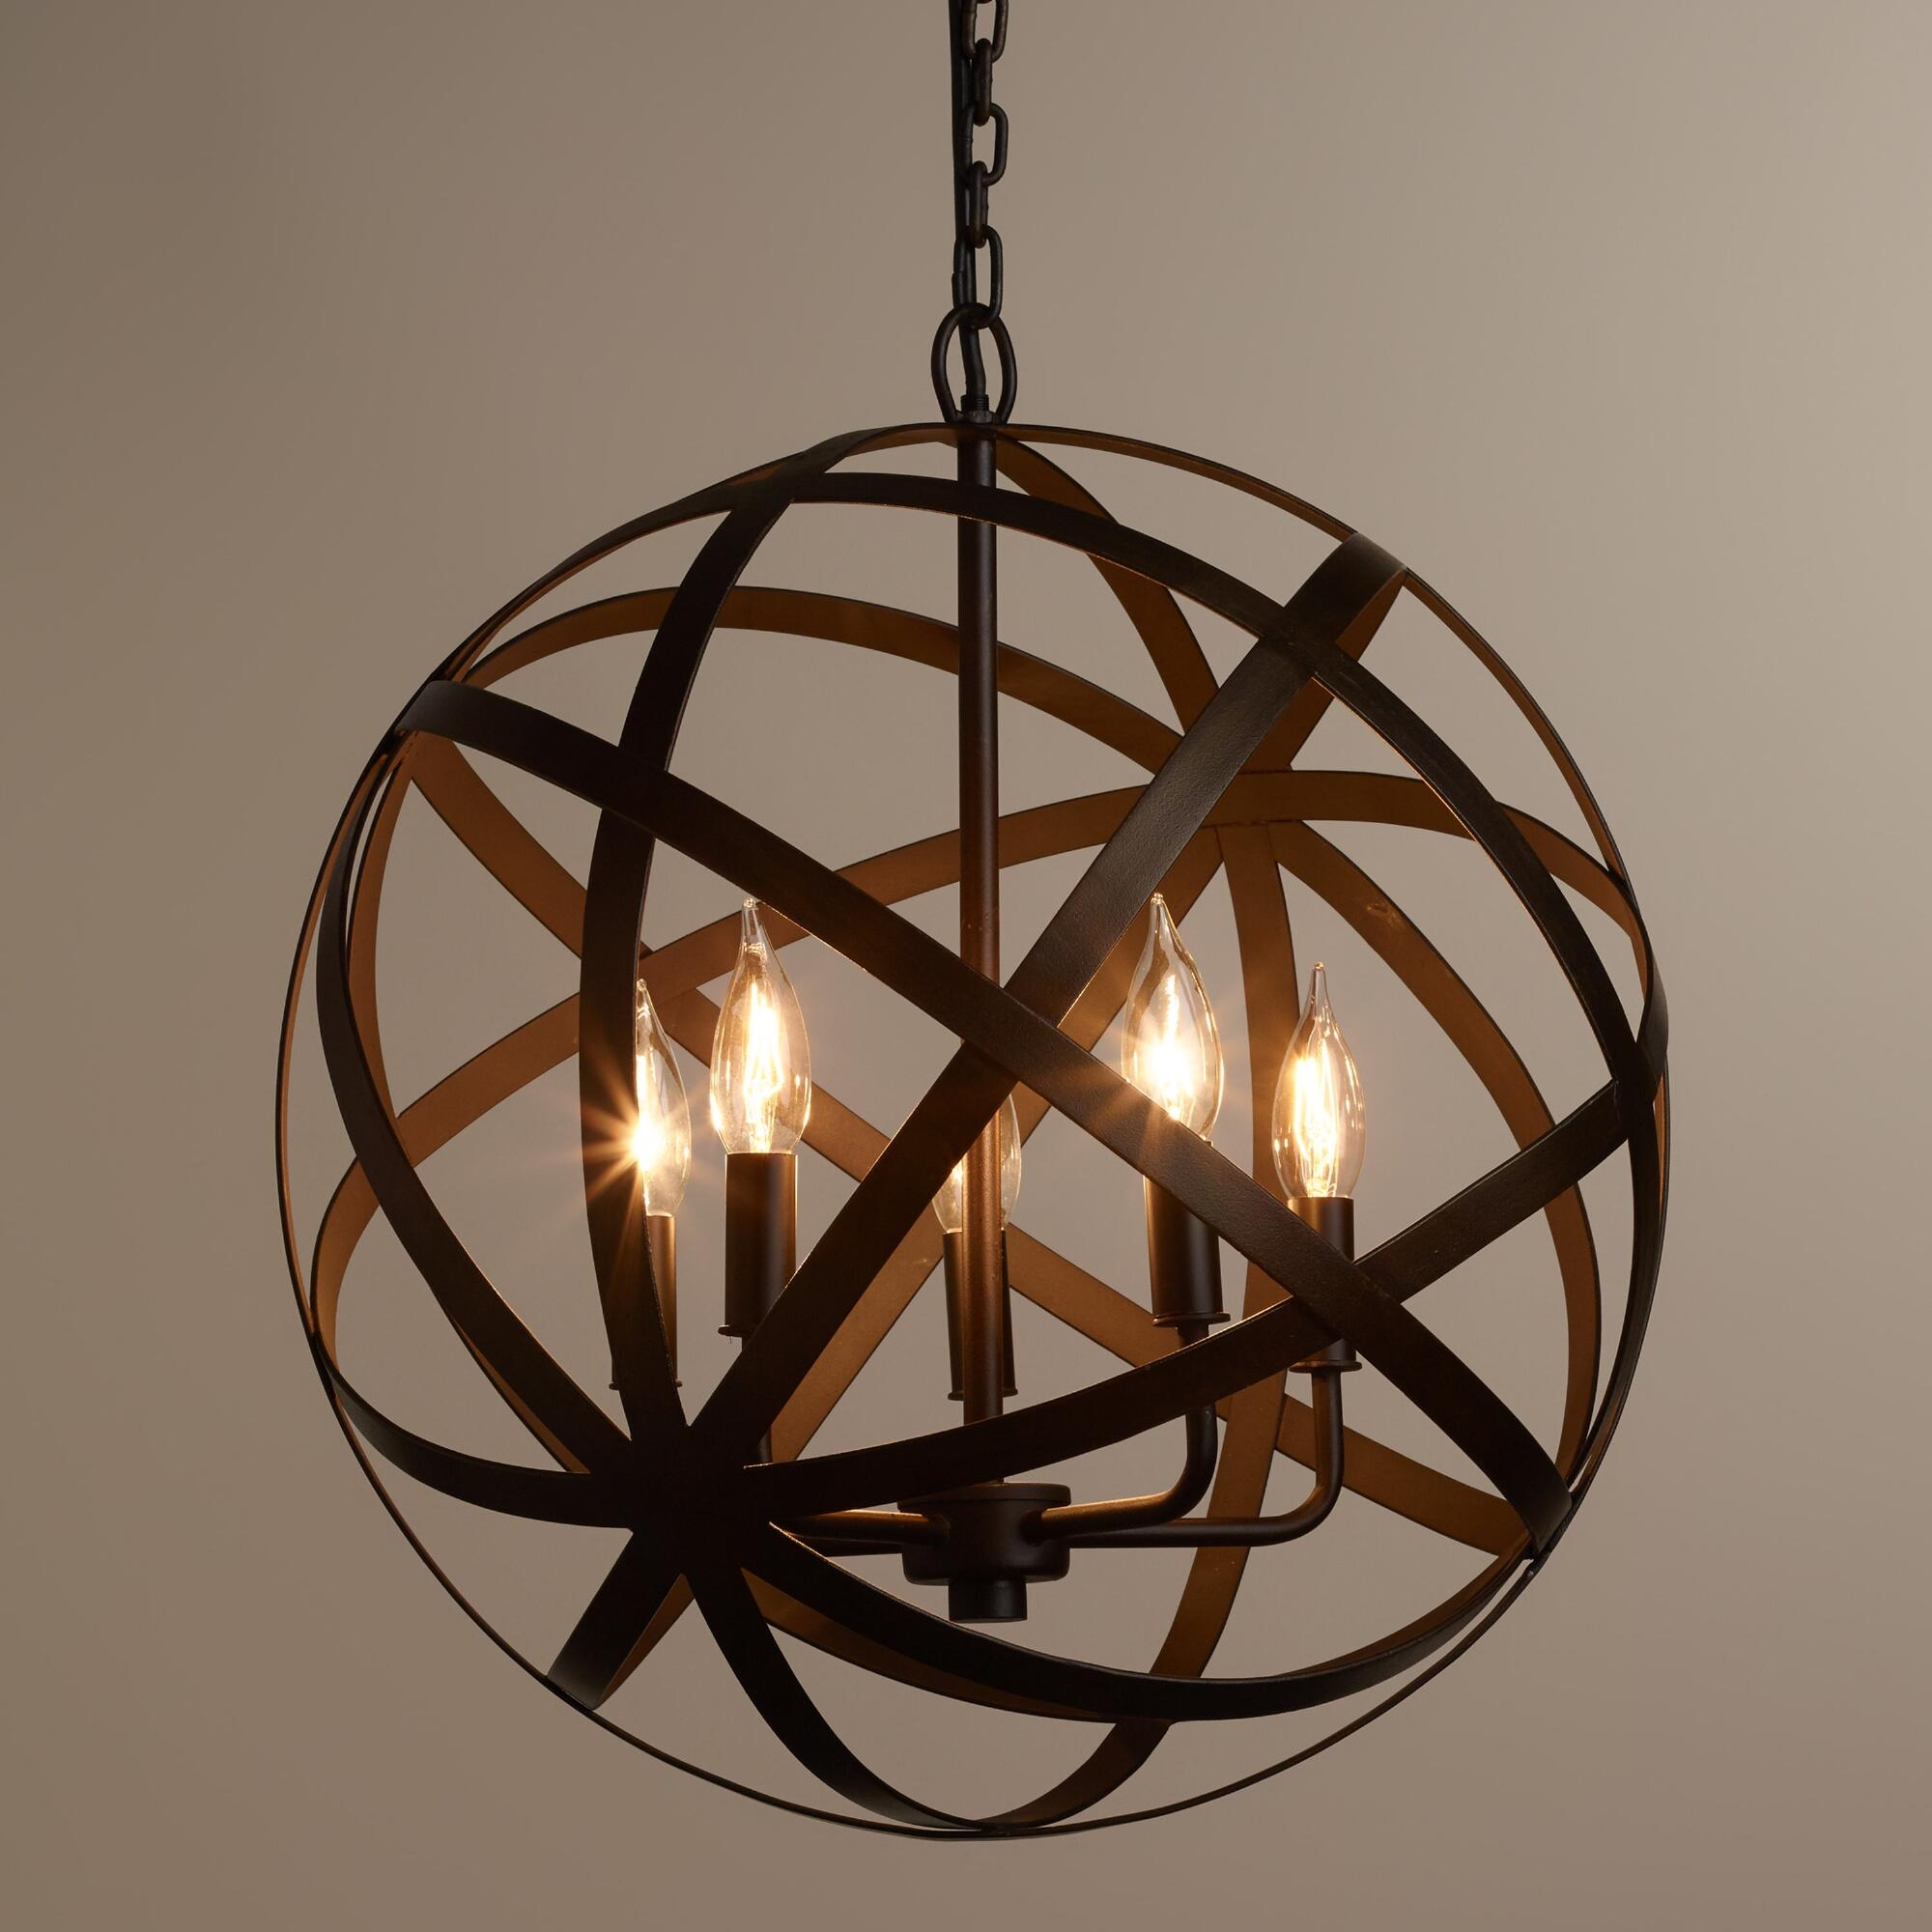 Metal Orb Chandelier Industrial Style And In India Throughout Metal Sphere Chandelier (Image 10 of 15)